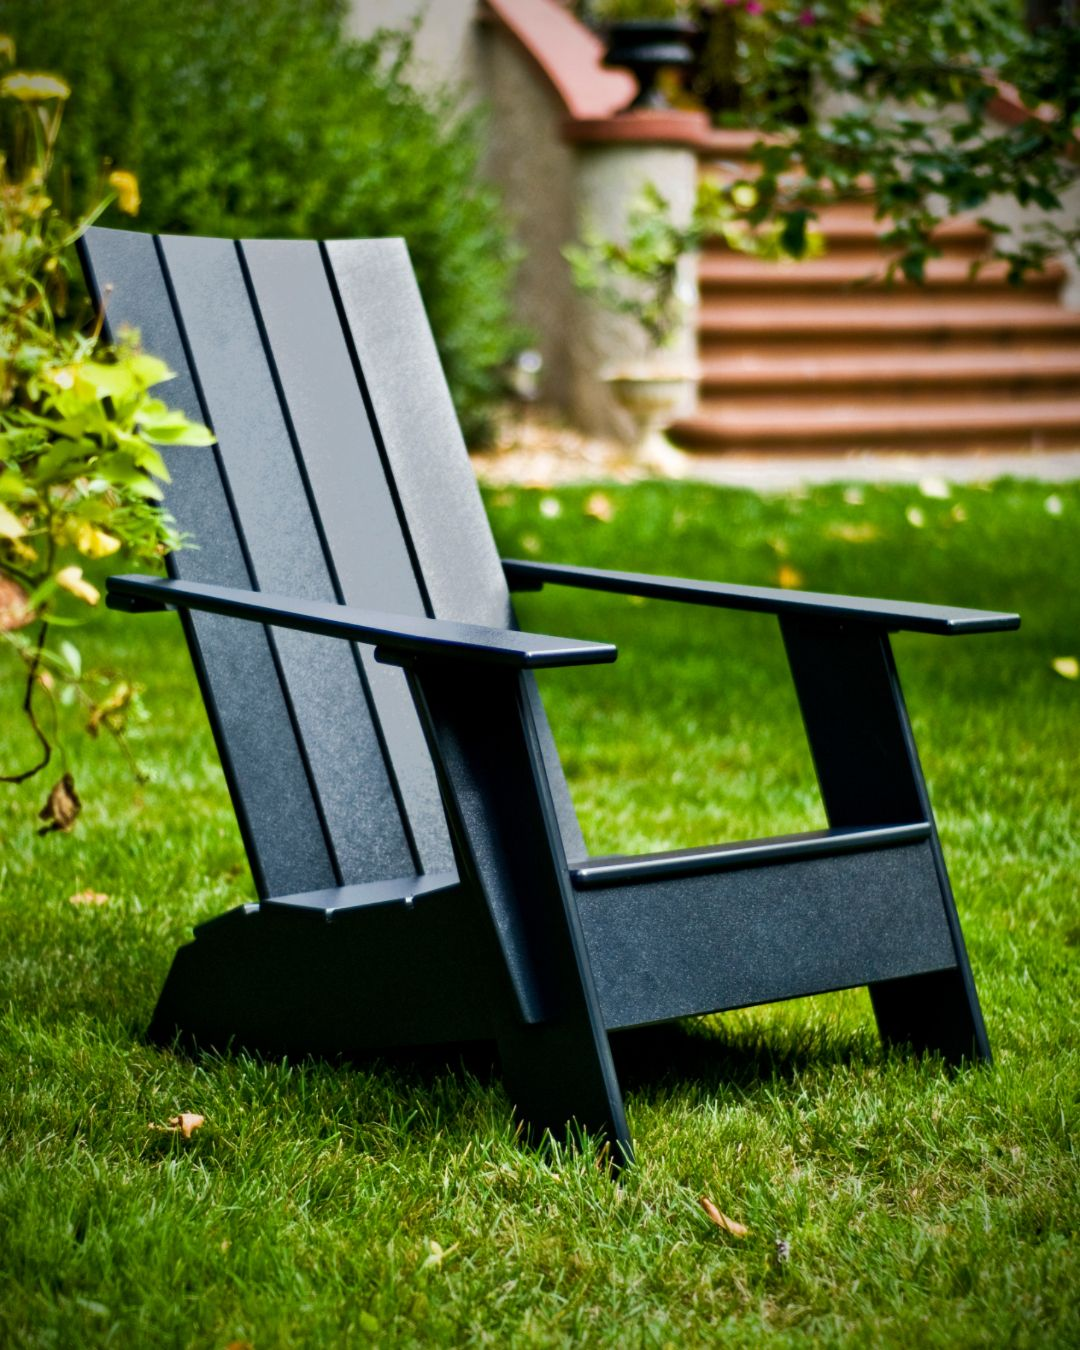 Loll Designs Adirondack Chair In Black In 2020 Outdoor Chairs